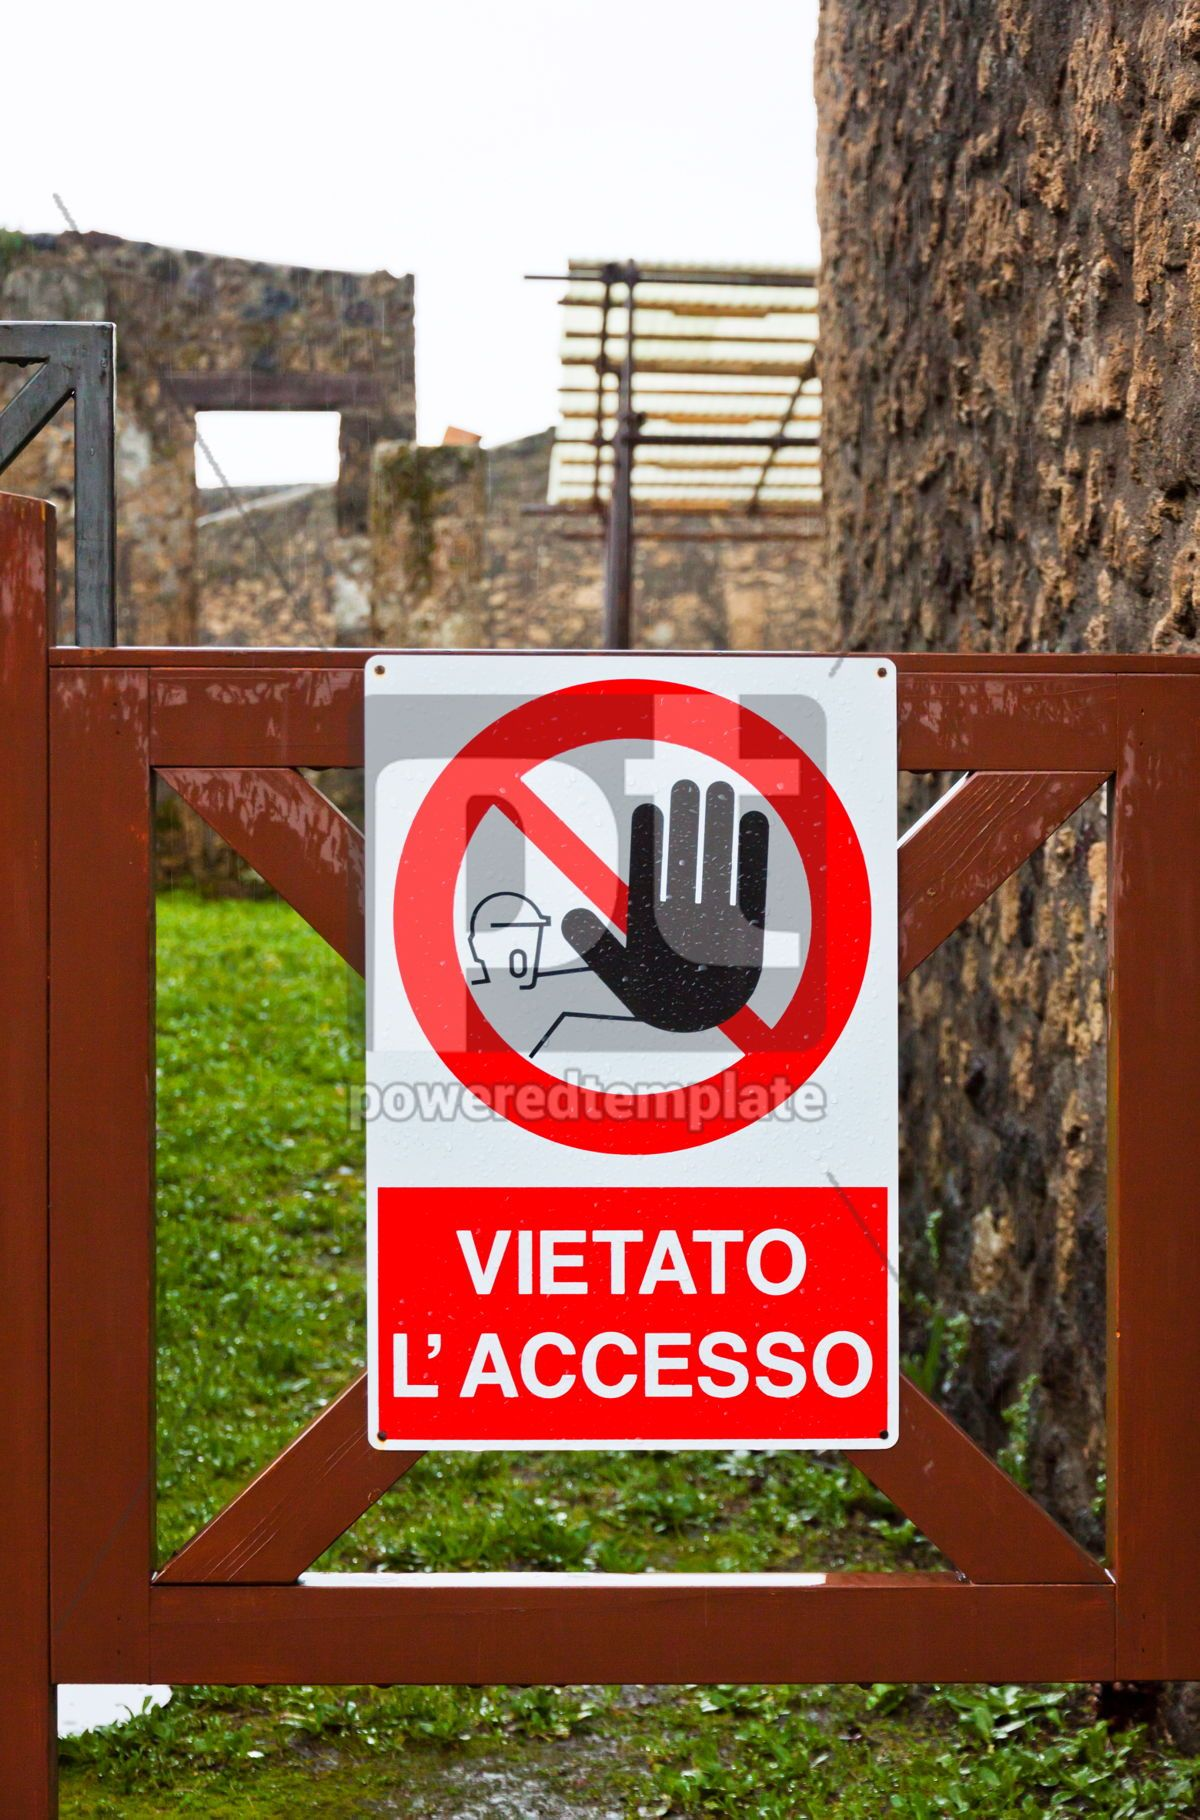 No access sign at construction area in Italy, 05204, Architecture  — PoweredTemplate.com